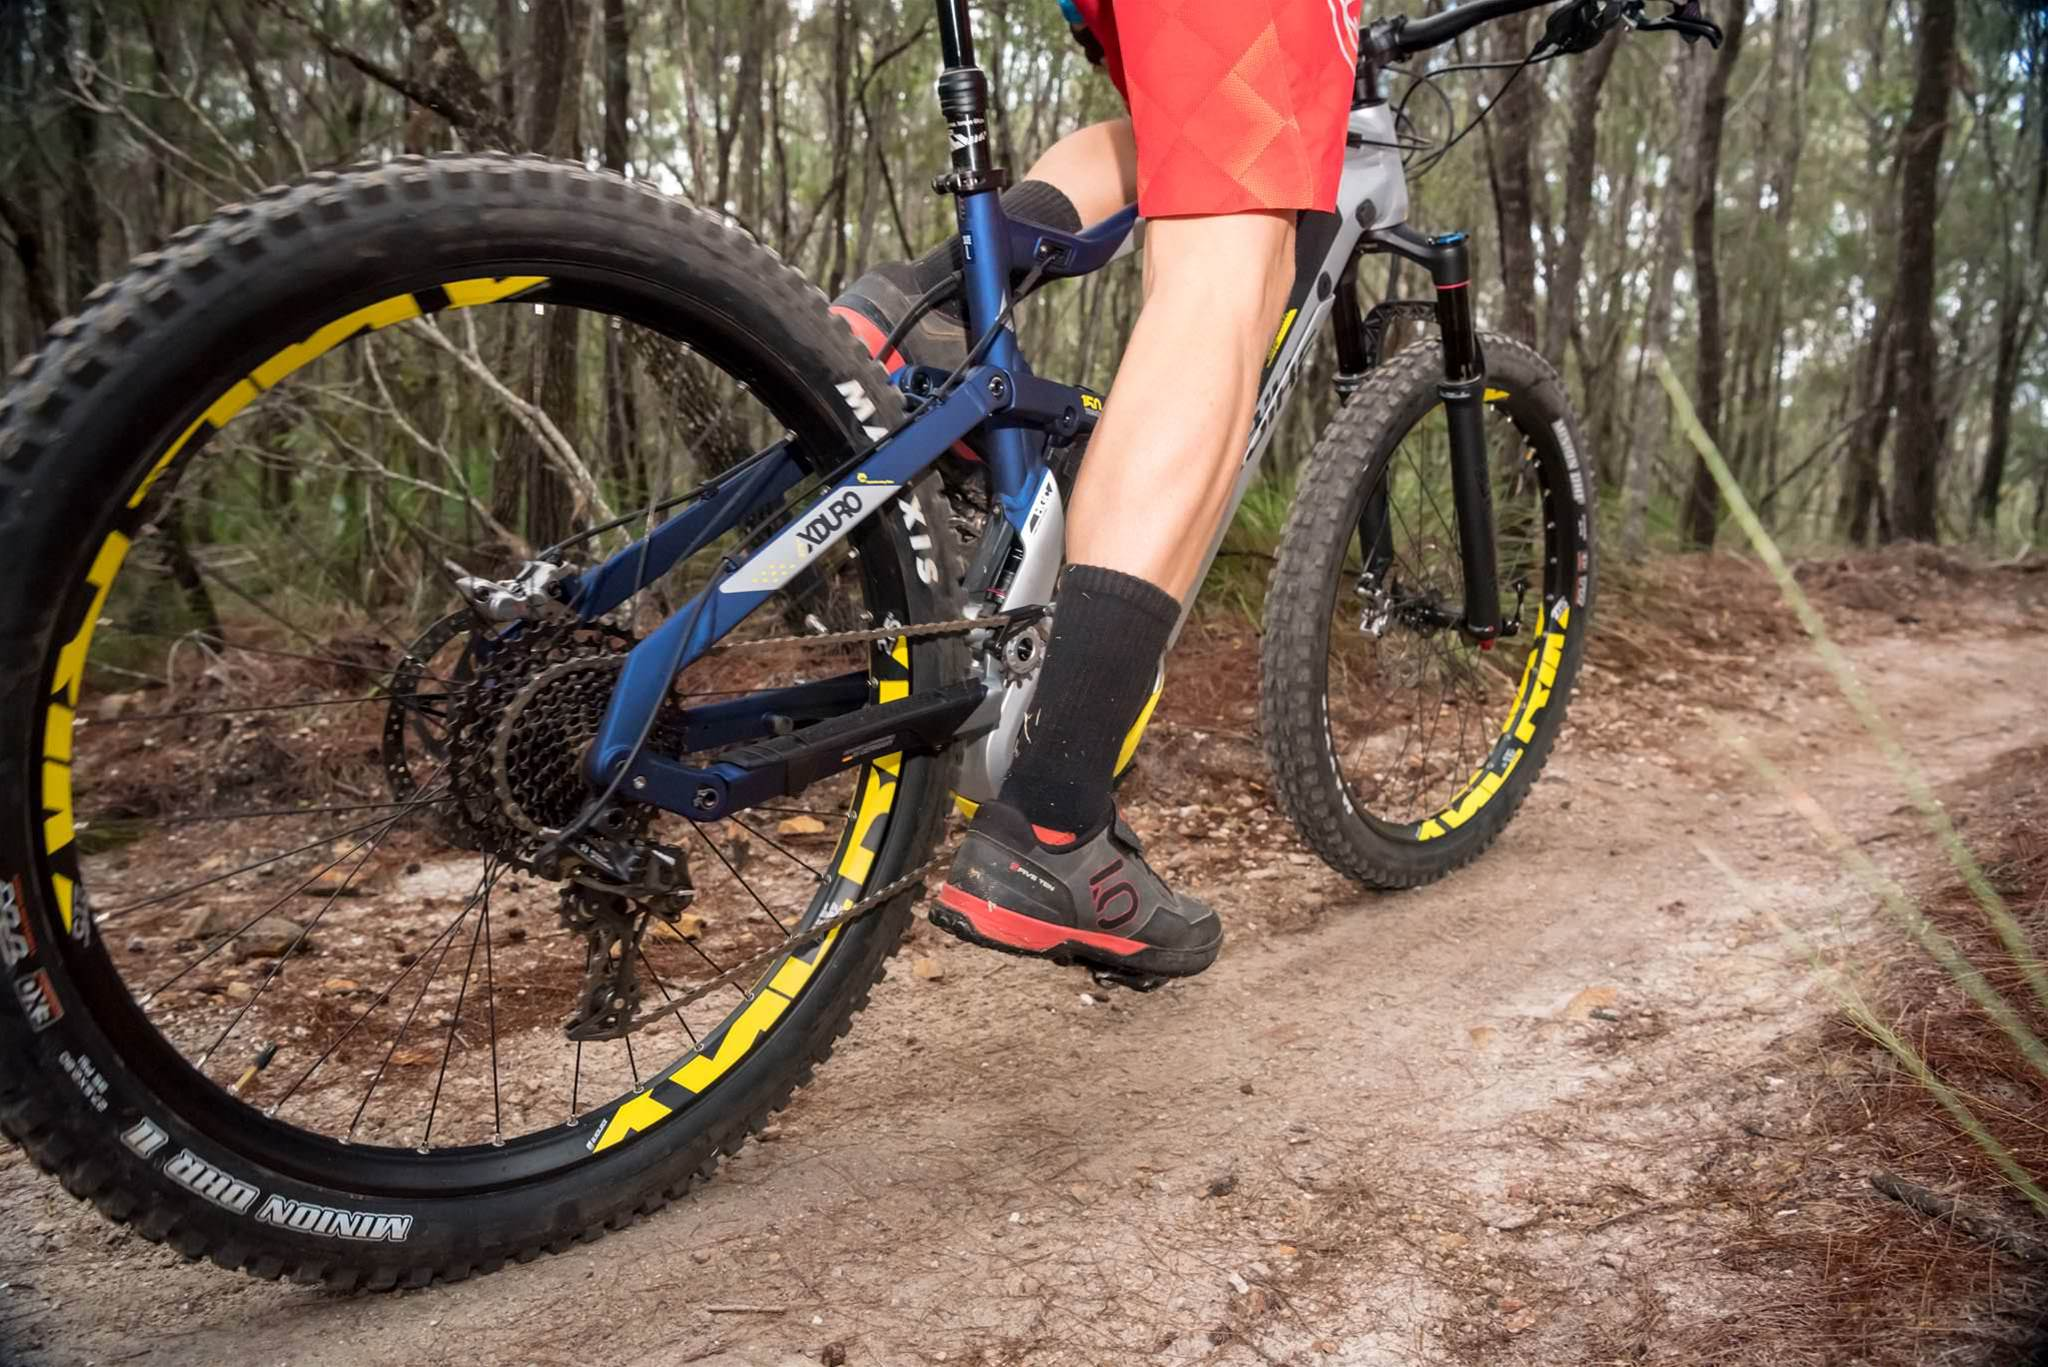 3543a05a378 Sporting 150mm of travel front and rear with plus size tyres this is big  bike. Thinking back to other bikes of this size I have tested the addition  of pedal ...